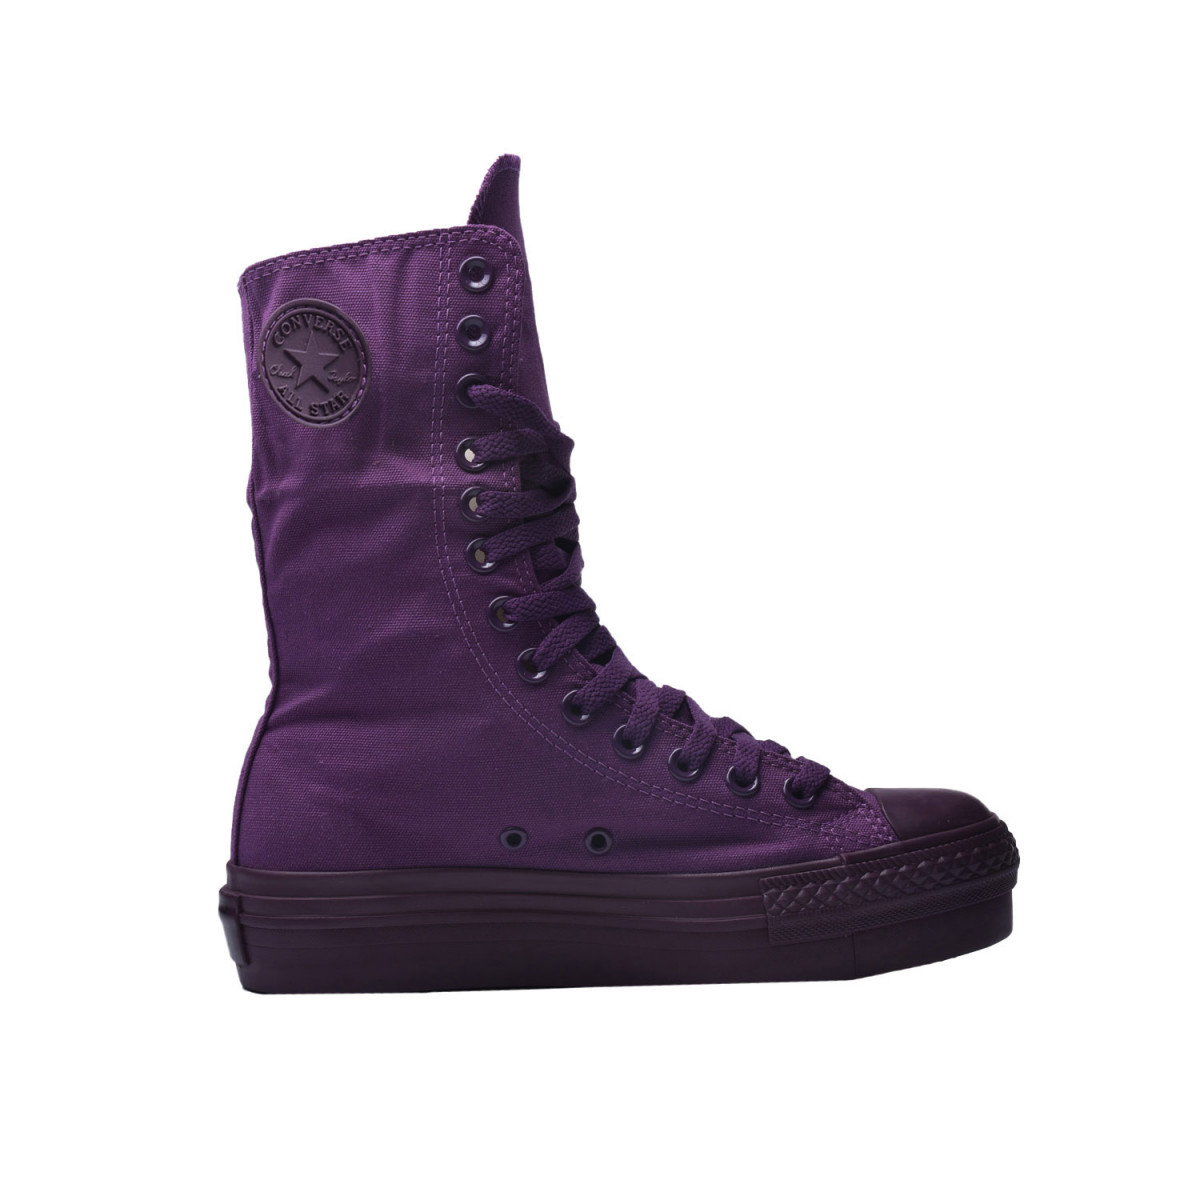 44d75a085ee Zapatillas Converse Chuck Taylor All Star - Mujer - 20% OFF